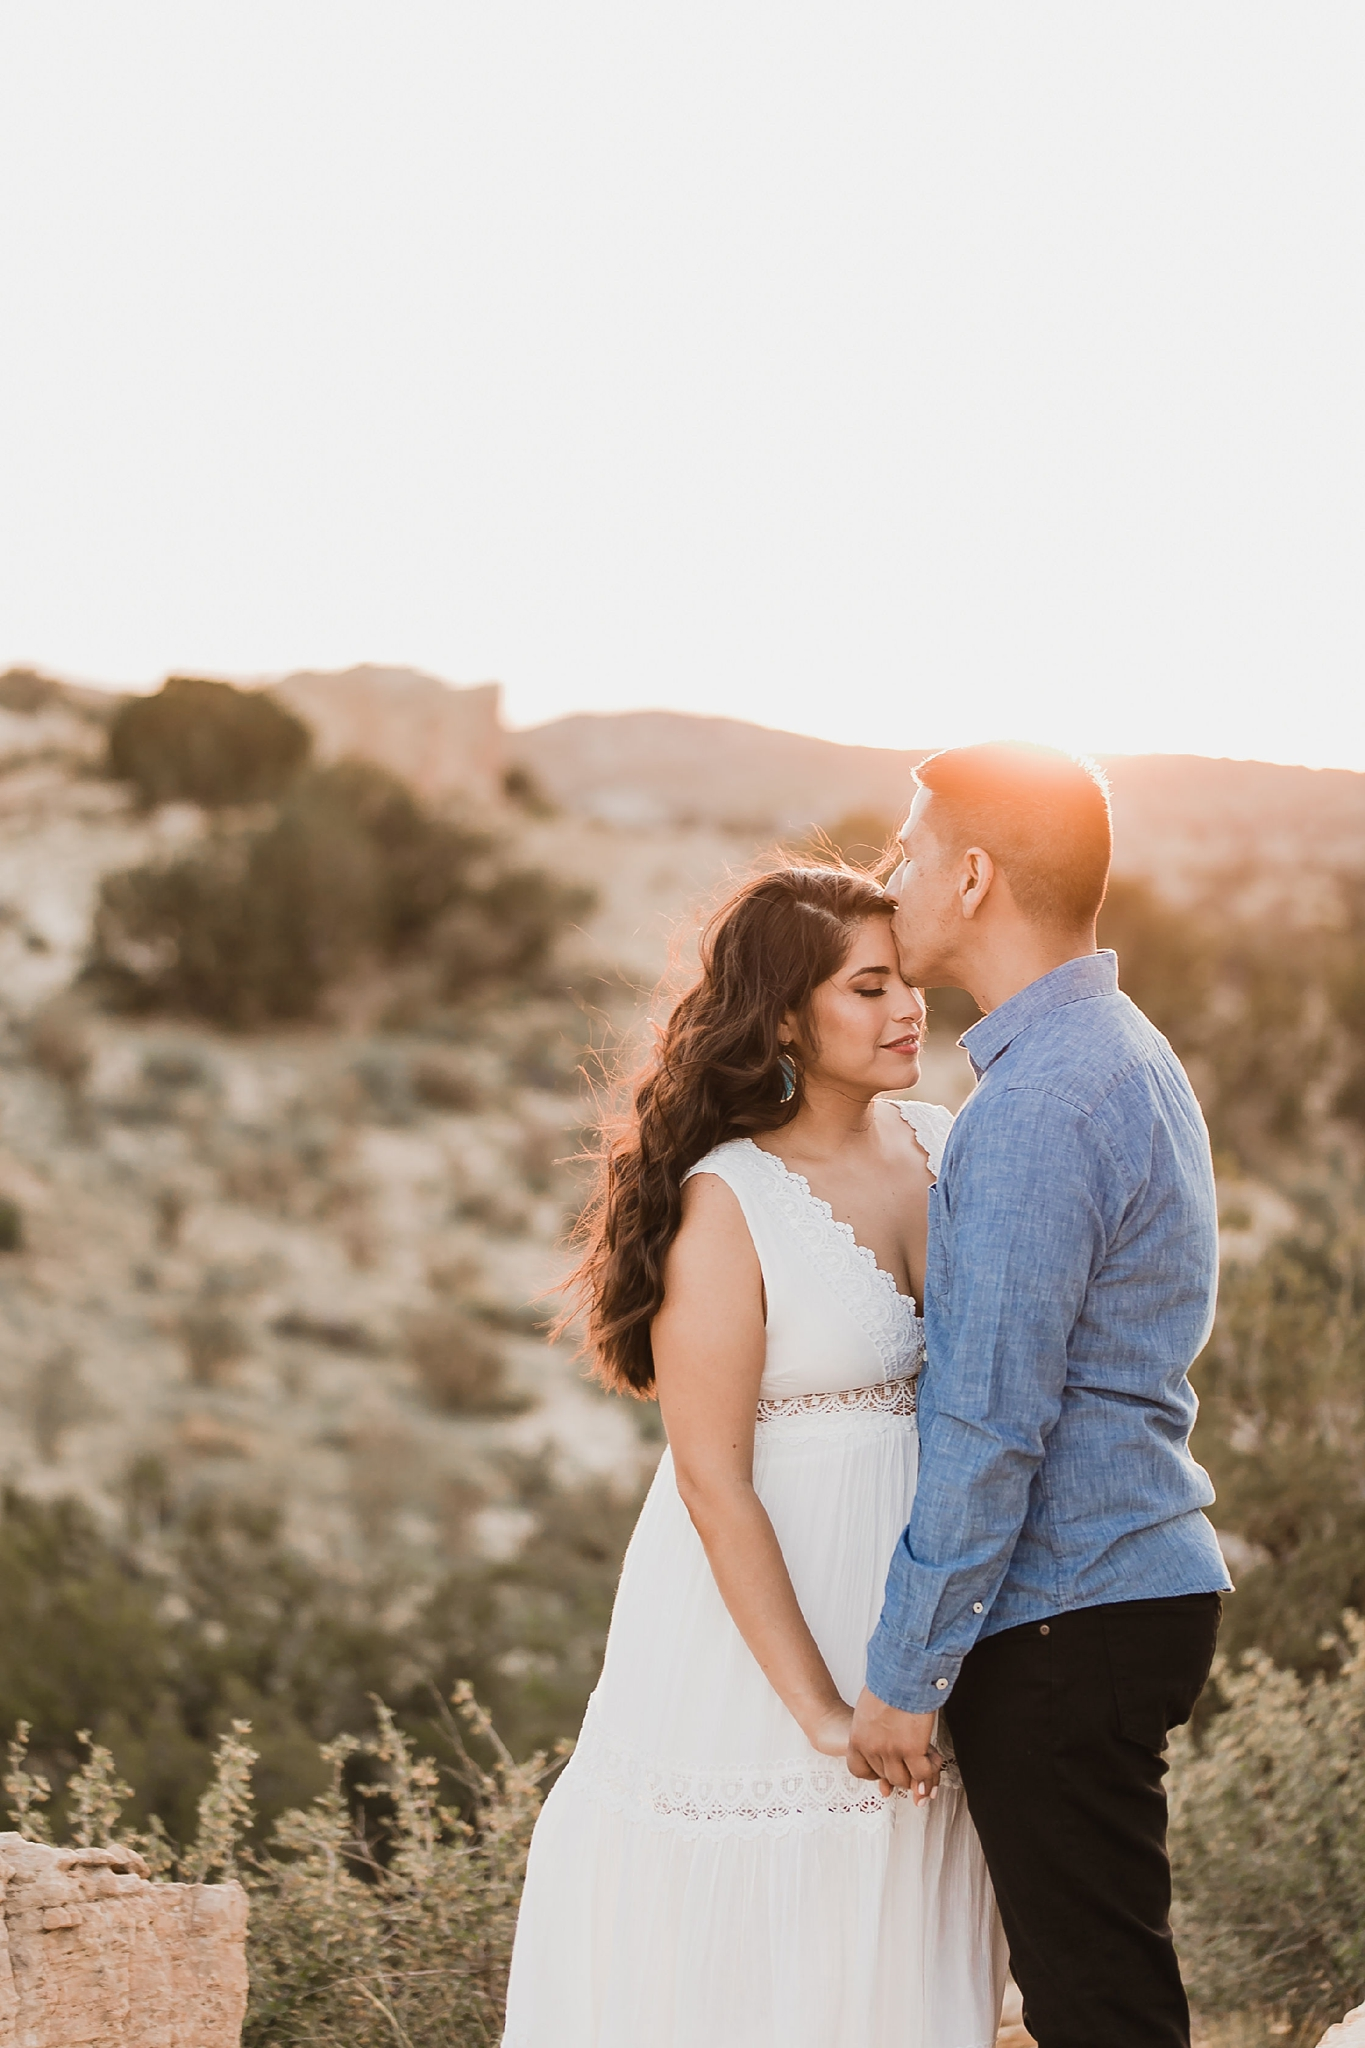 Alicia+lucia+photography+-+albuquerque+wedding+photographer+-+santa+fe+wedding+photography+-+new+mexico+wedding+photographer+-+new+mexico+wedding+-+new+mexico+engagement+-+white+mesa+engagement+-+desert+engagement_0008.jpg